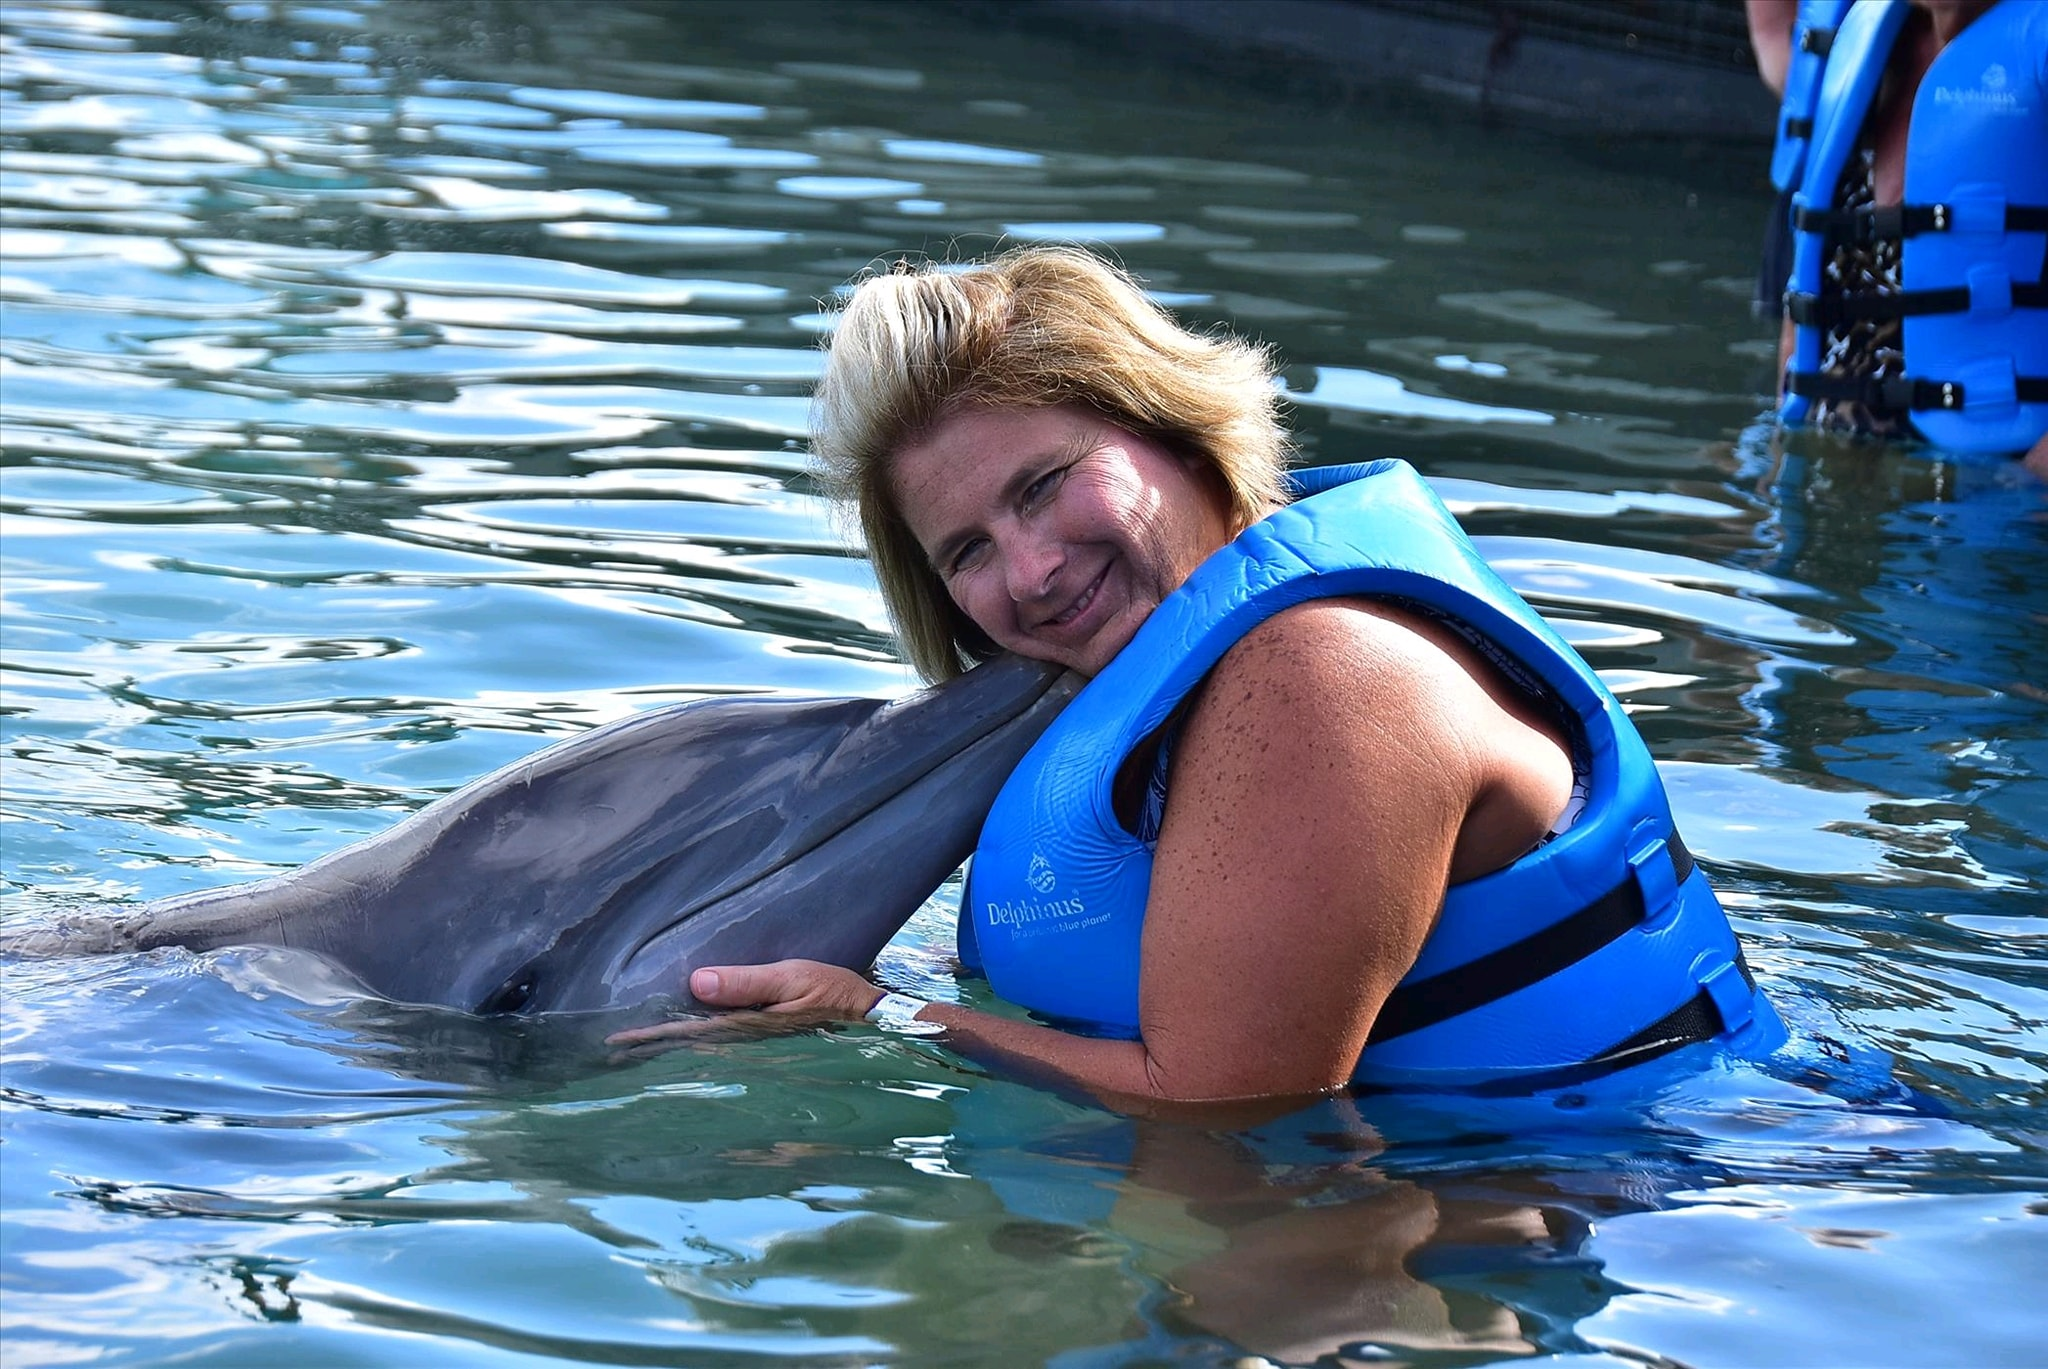 Pick and pack travel swam with the dolphins. It was truly amazing